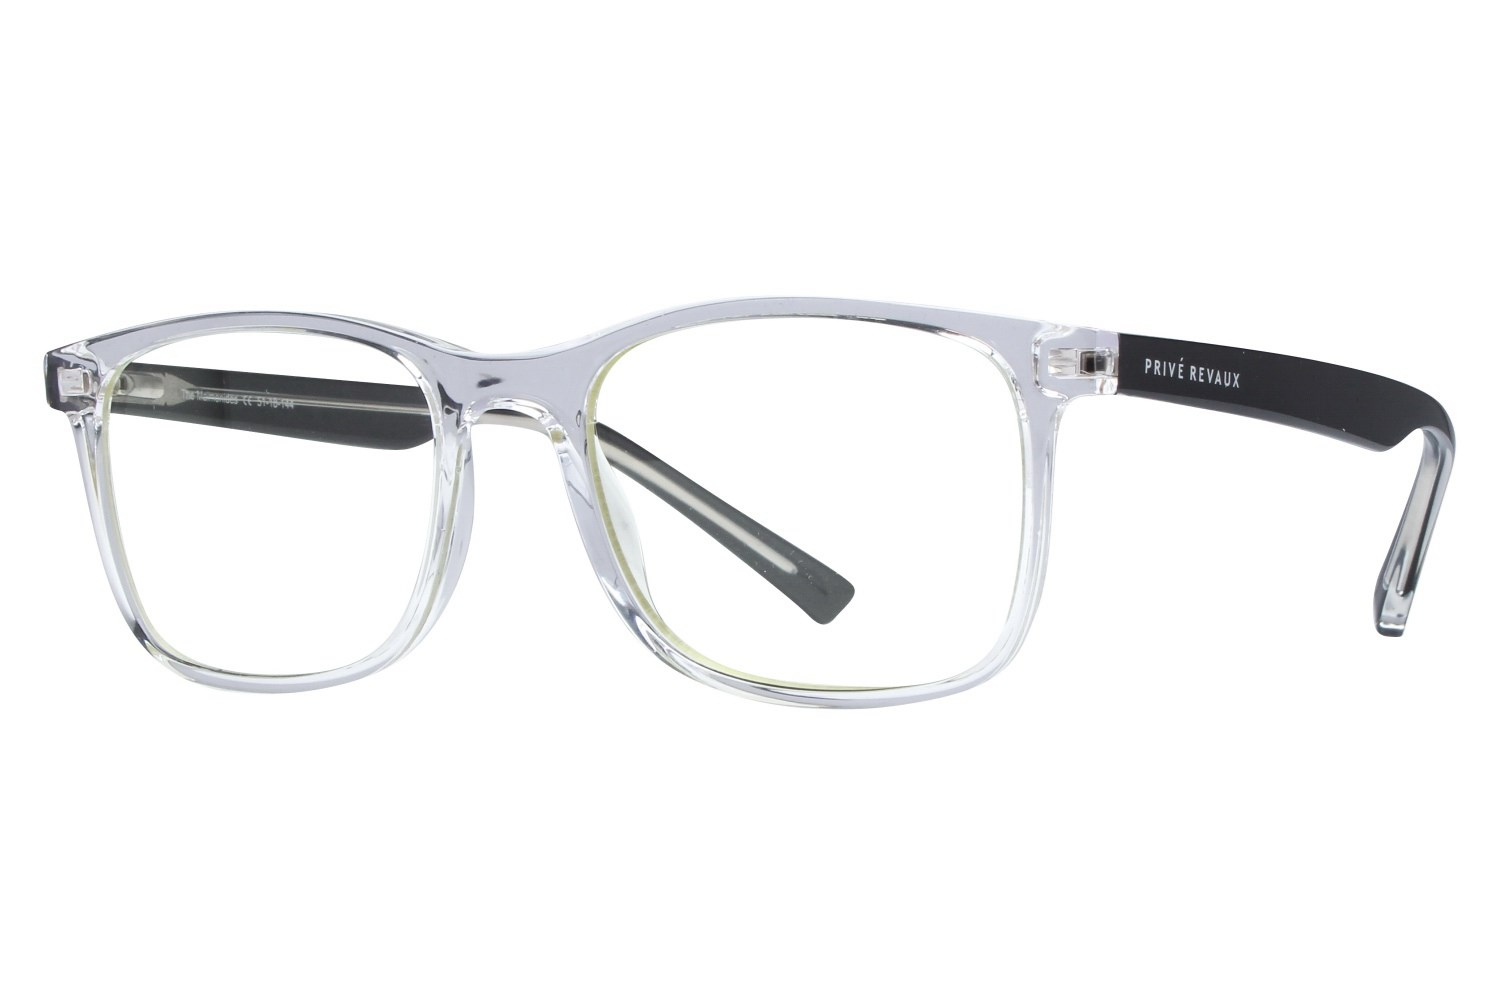 Prive Revaux The Maimonides Glasses- Clear